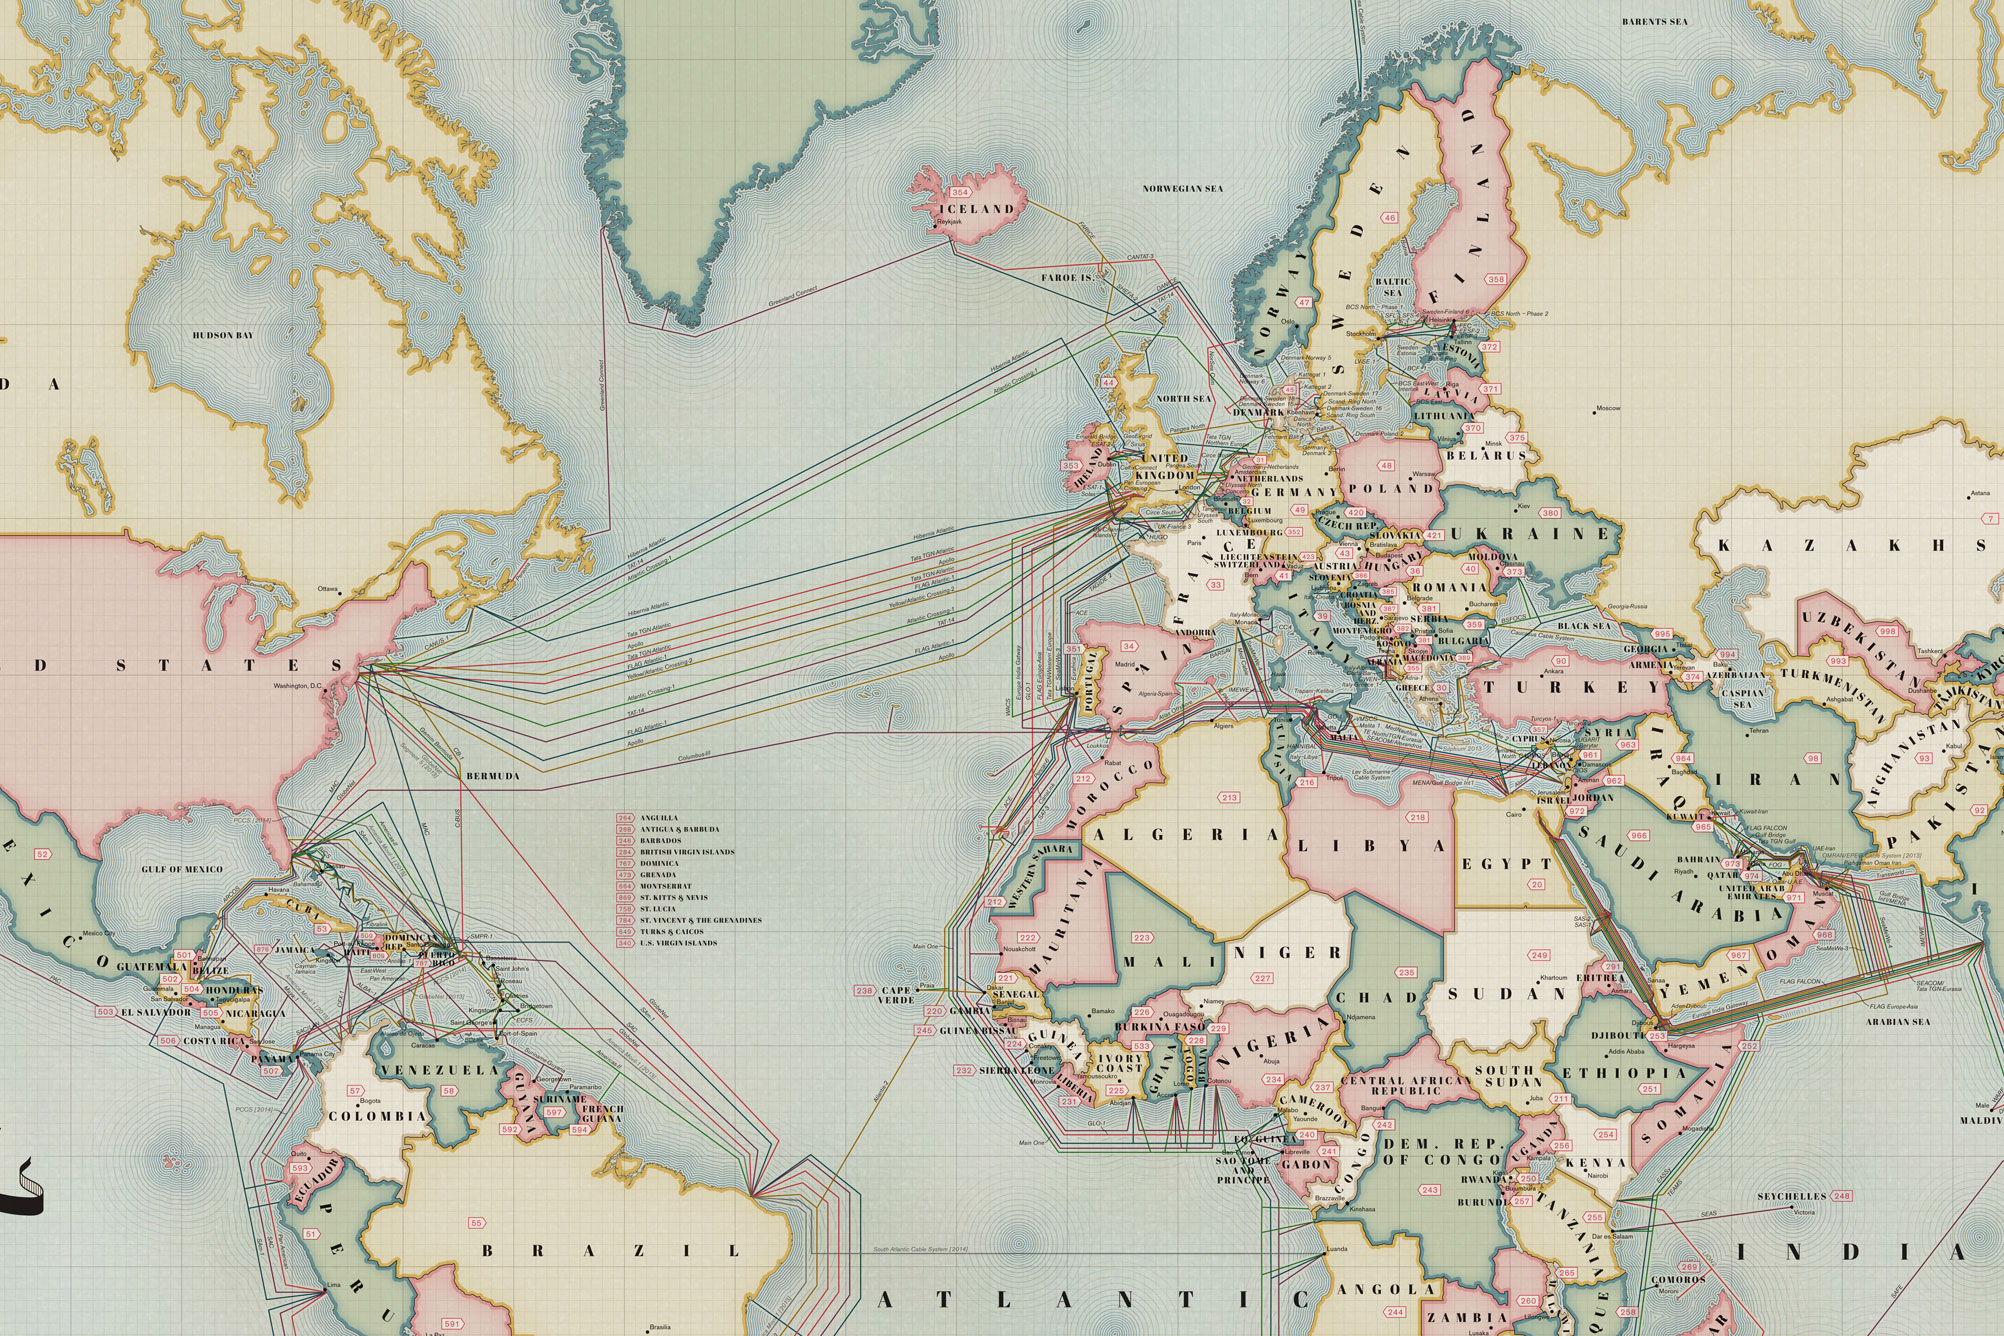 Making Submarine Cables Works of Art